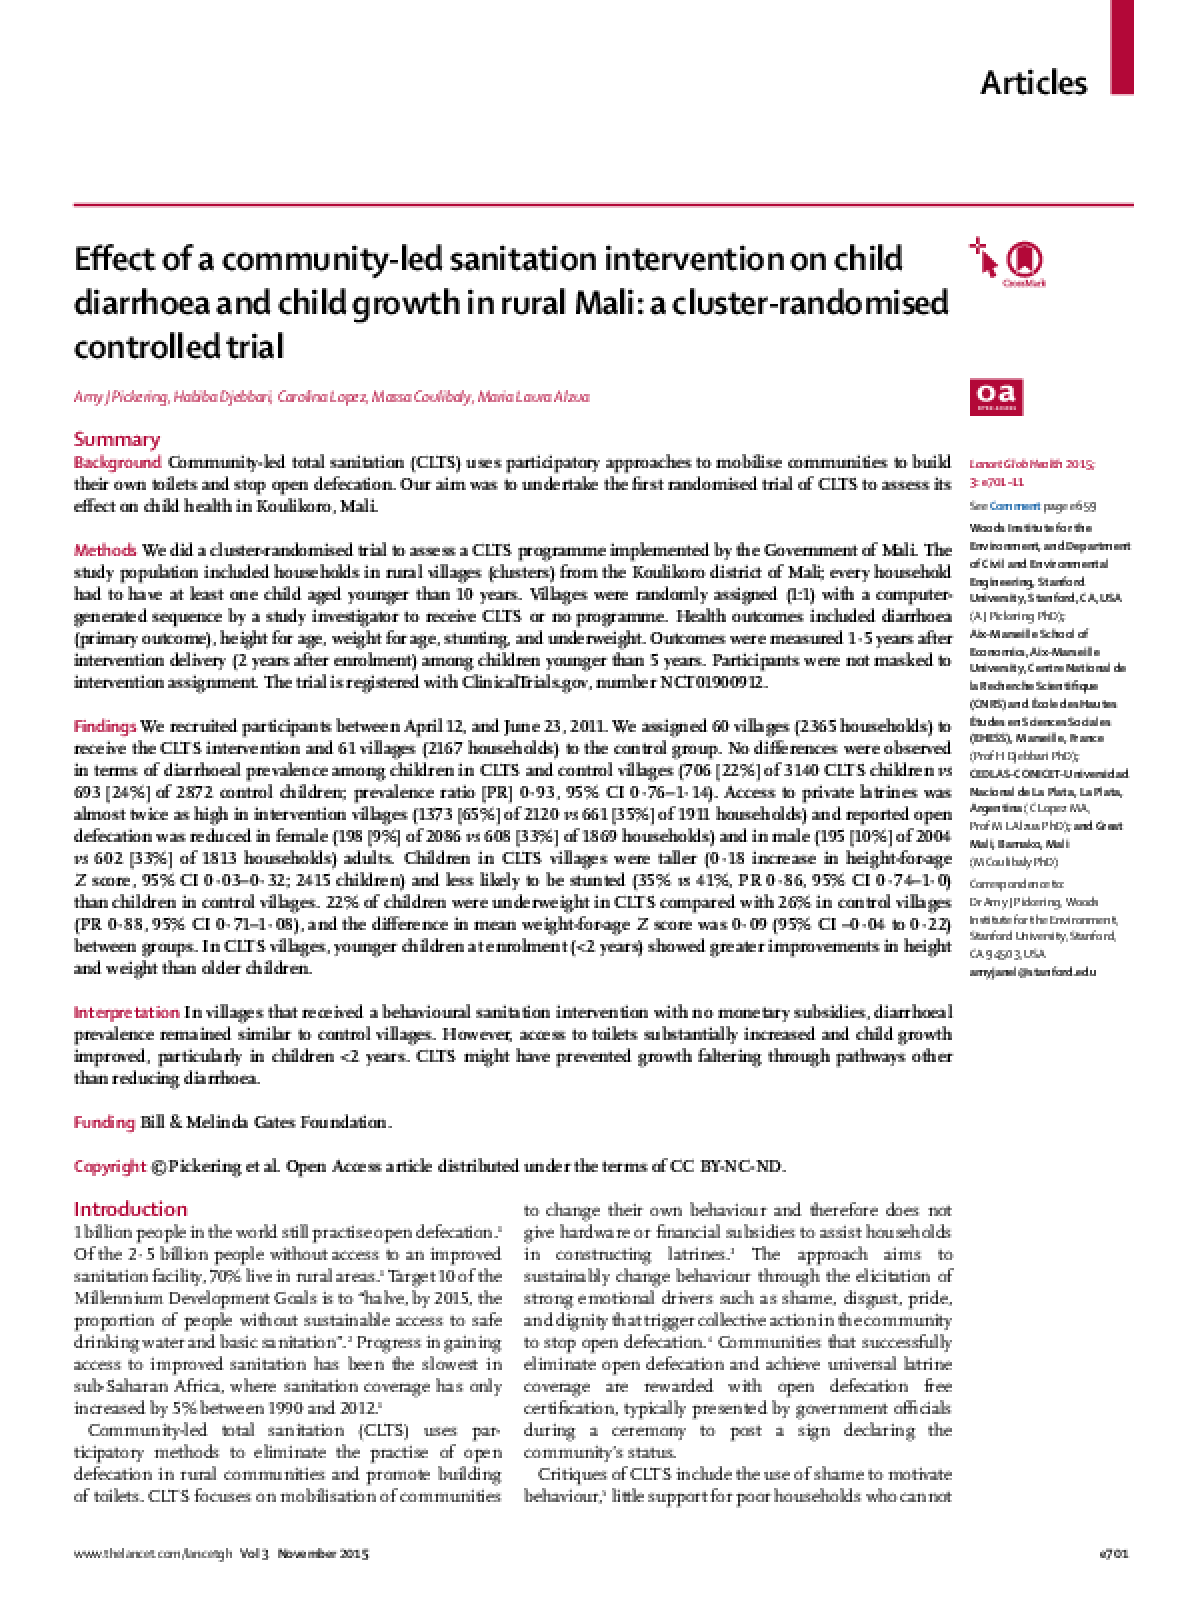 Effect of a Community-Led Sanitation Intervention on Child Diarrhoea and Child Growth in Rural Mali: a Cluster-Randomised Controlled Trial